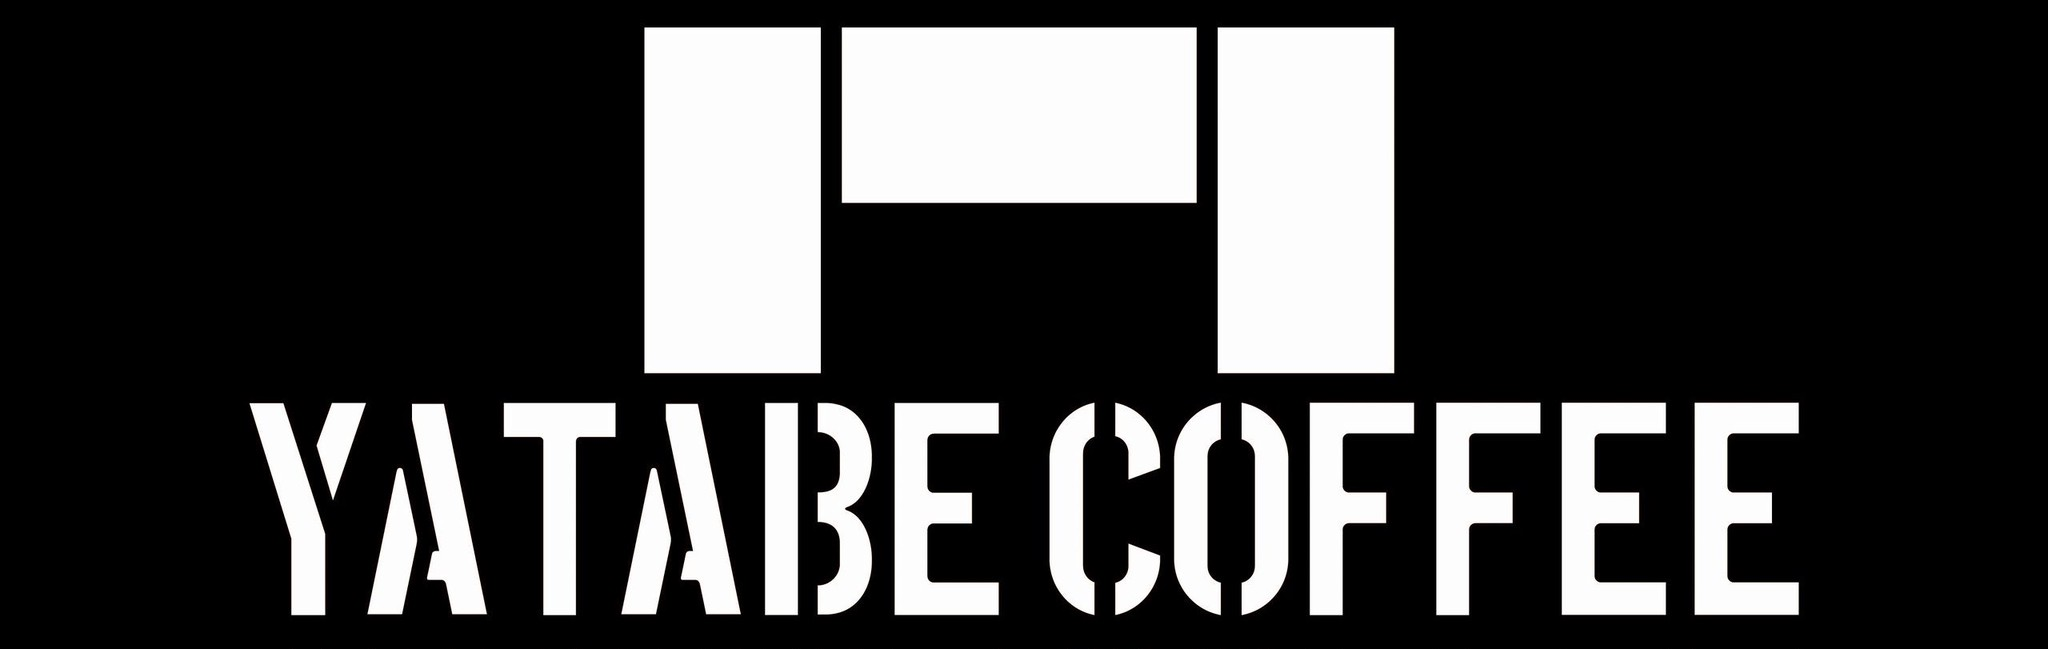 YATABE COFFEE